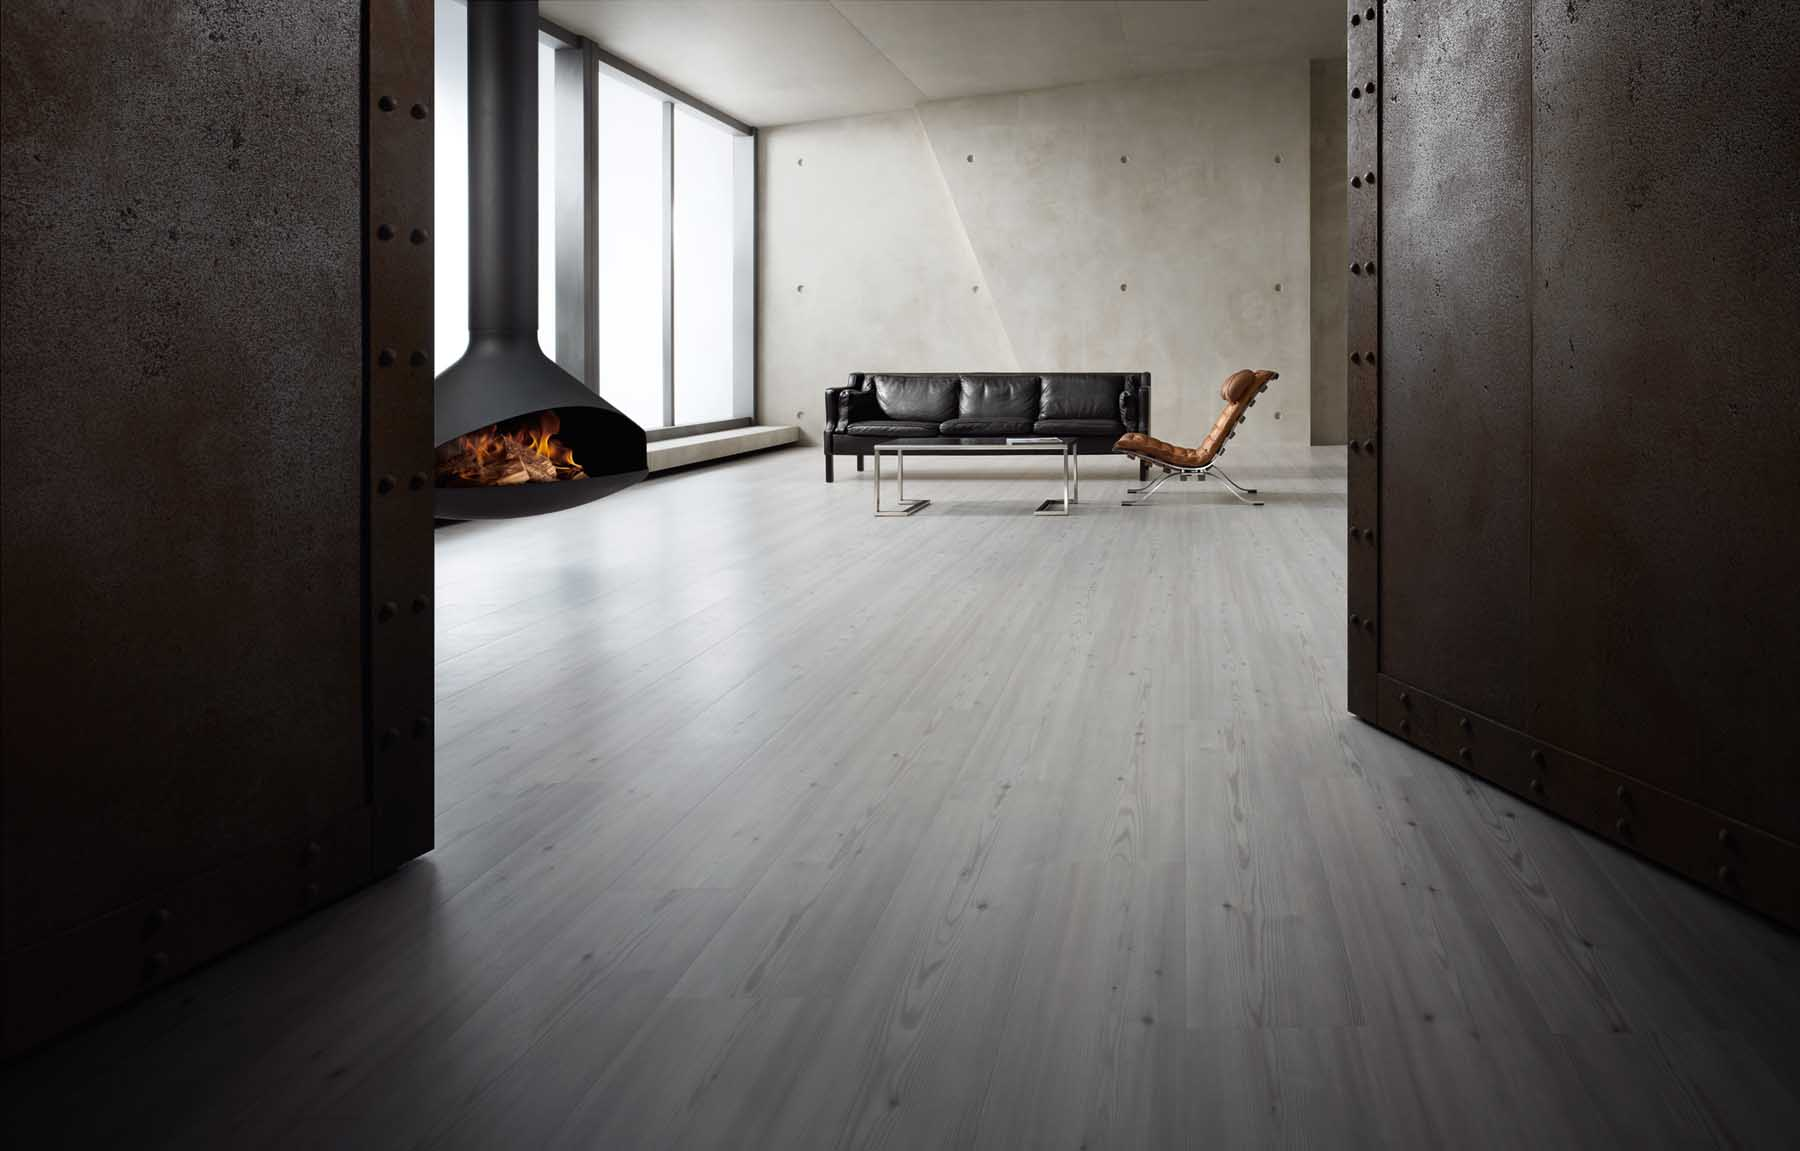 Inspire Flooring Aberdeen Inspirational Floors In Aberdeenshire